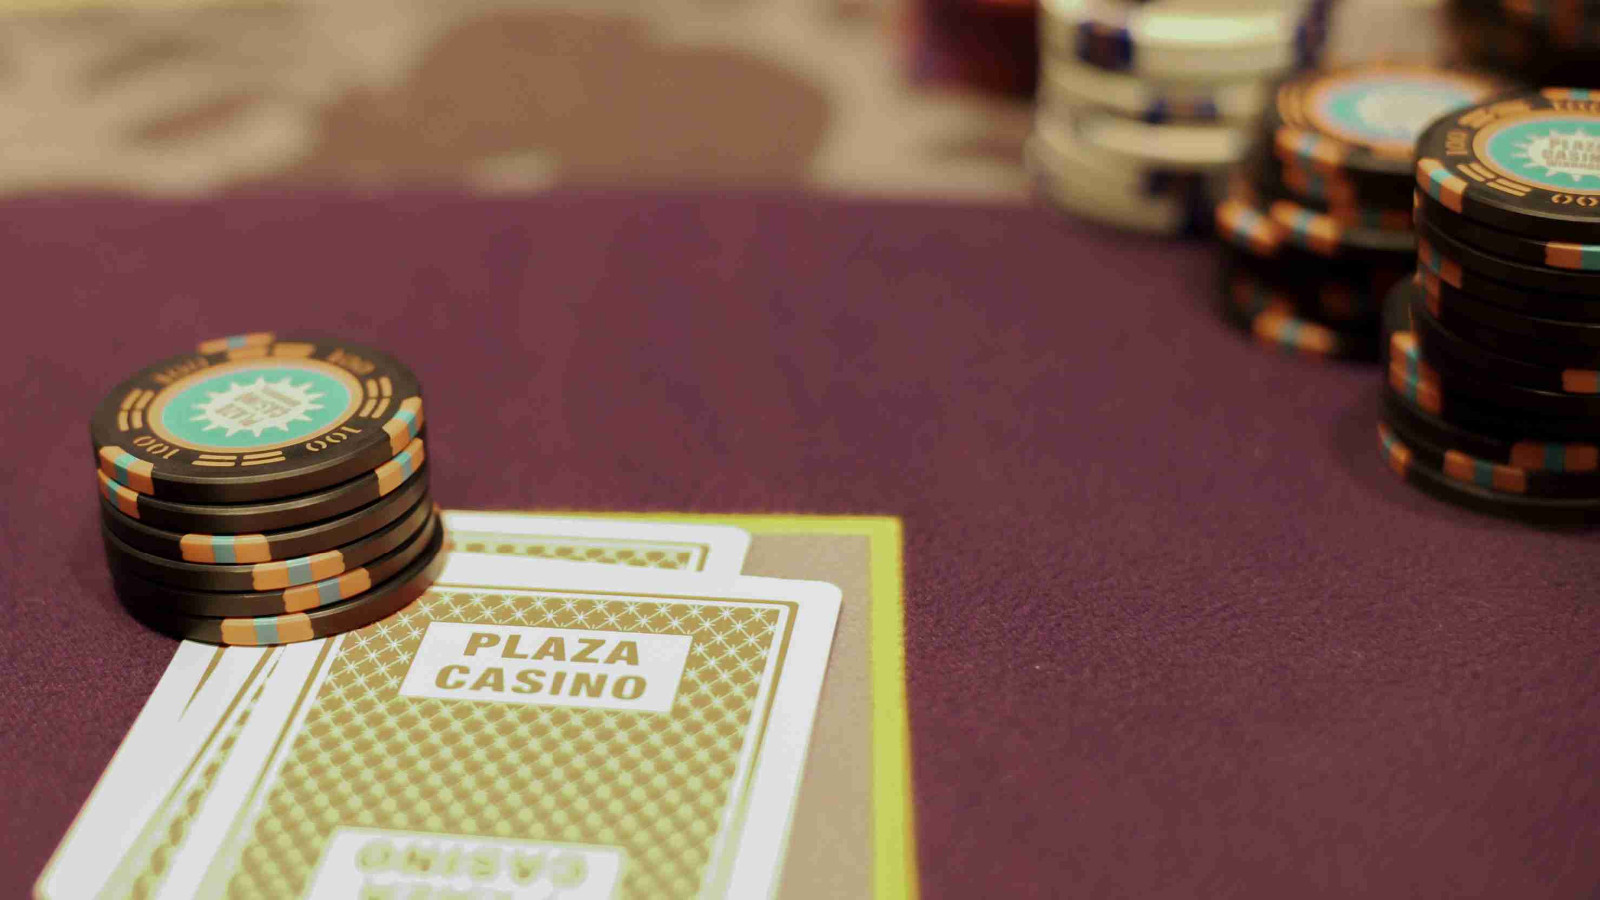 PAI GOW Affiliated Articles